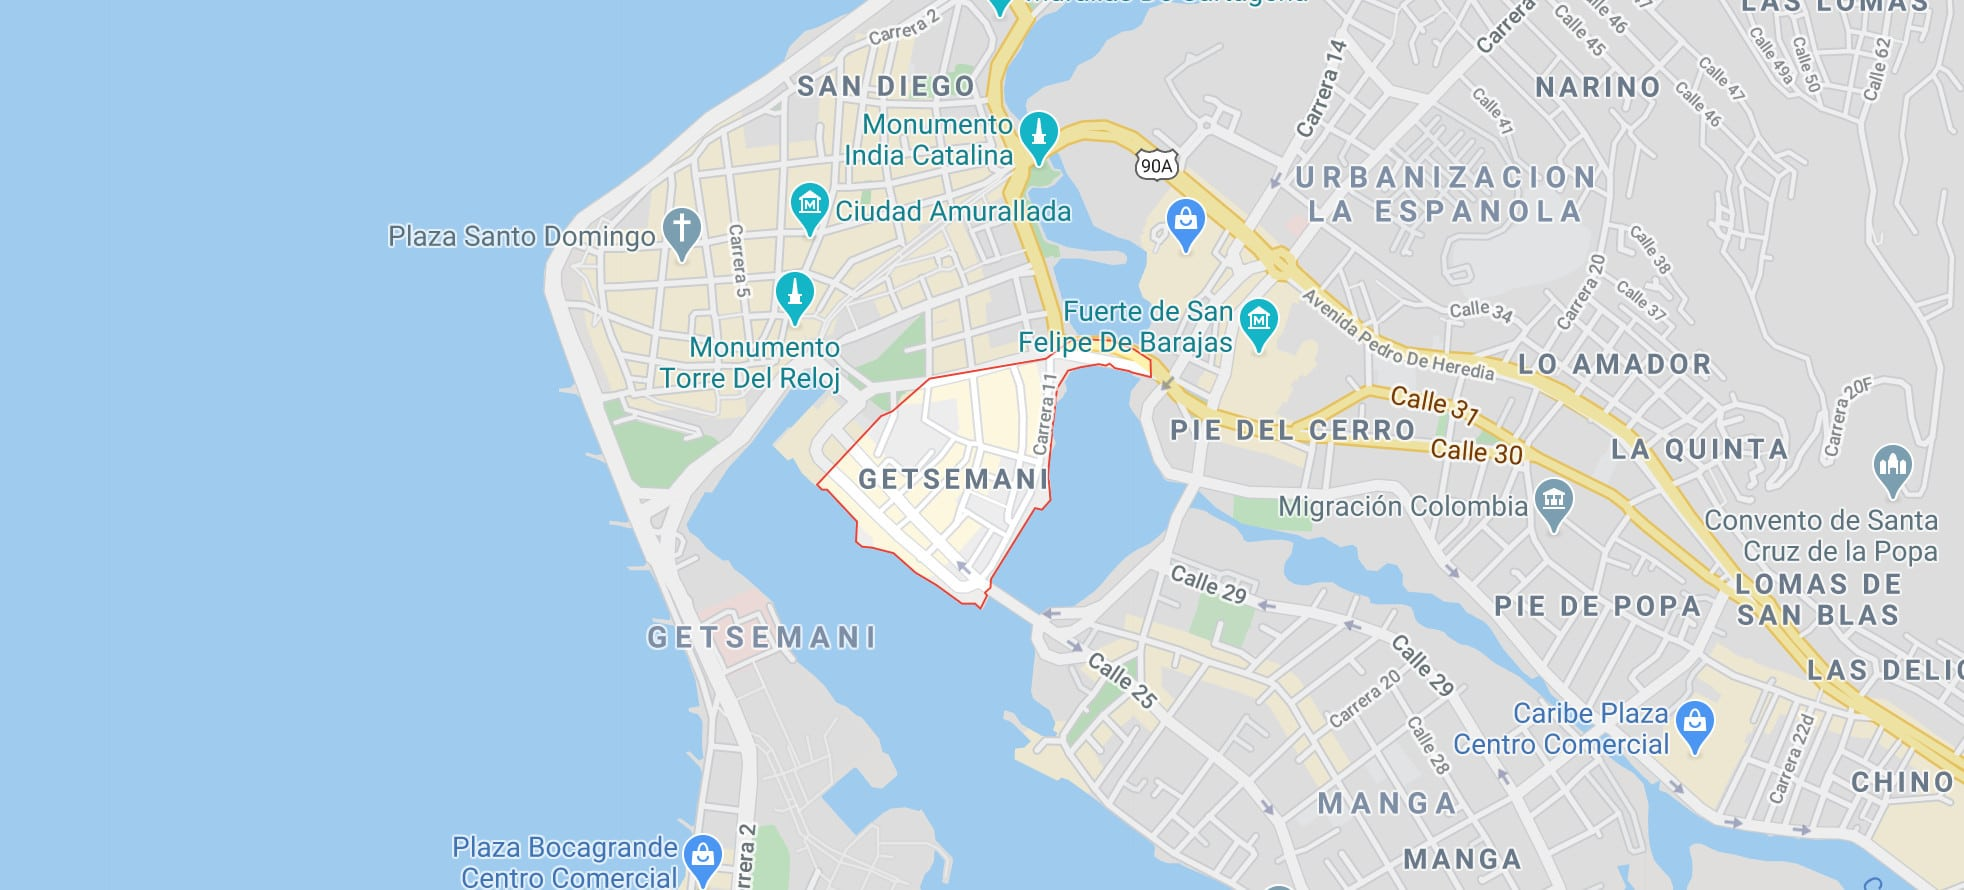 Getsemani map